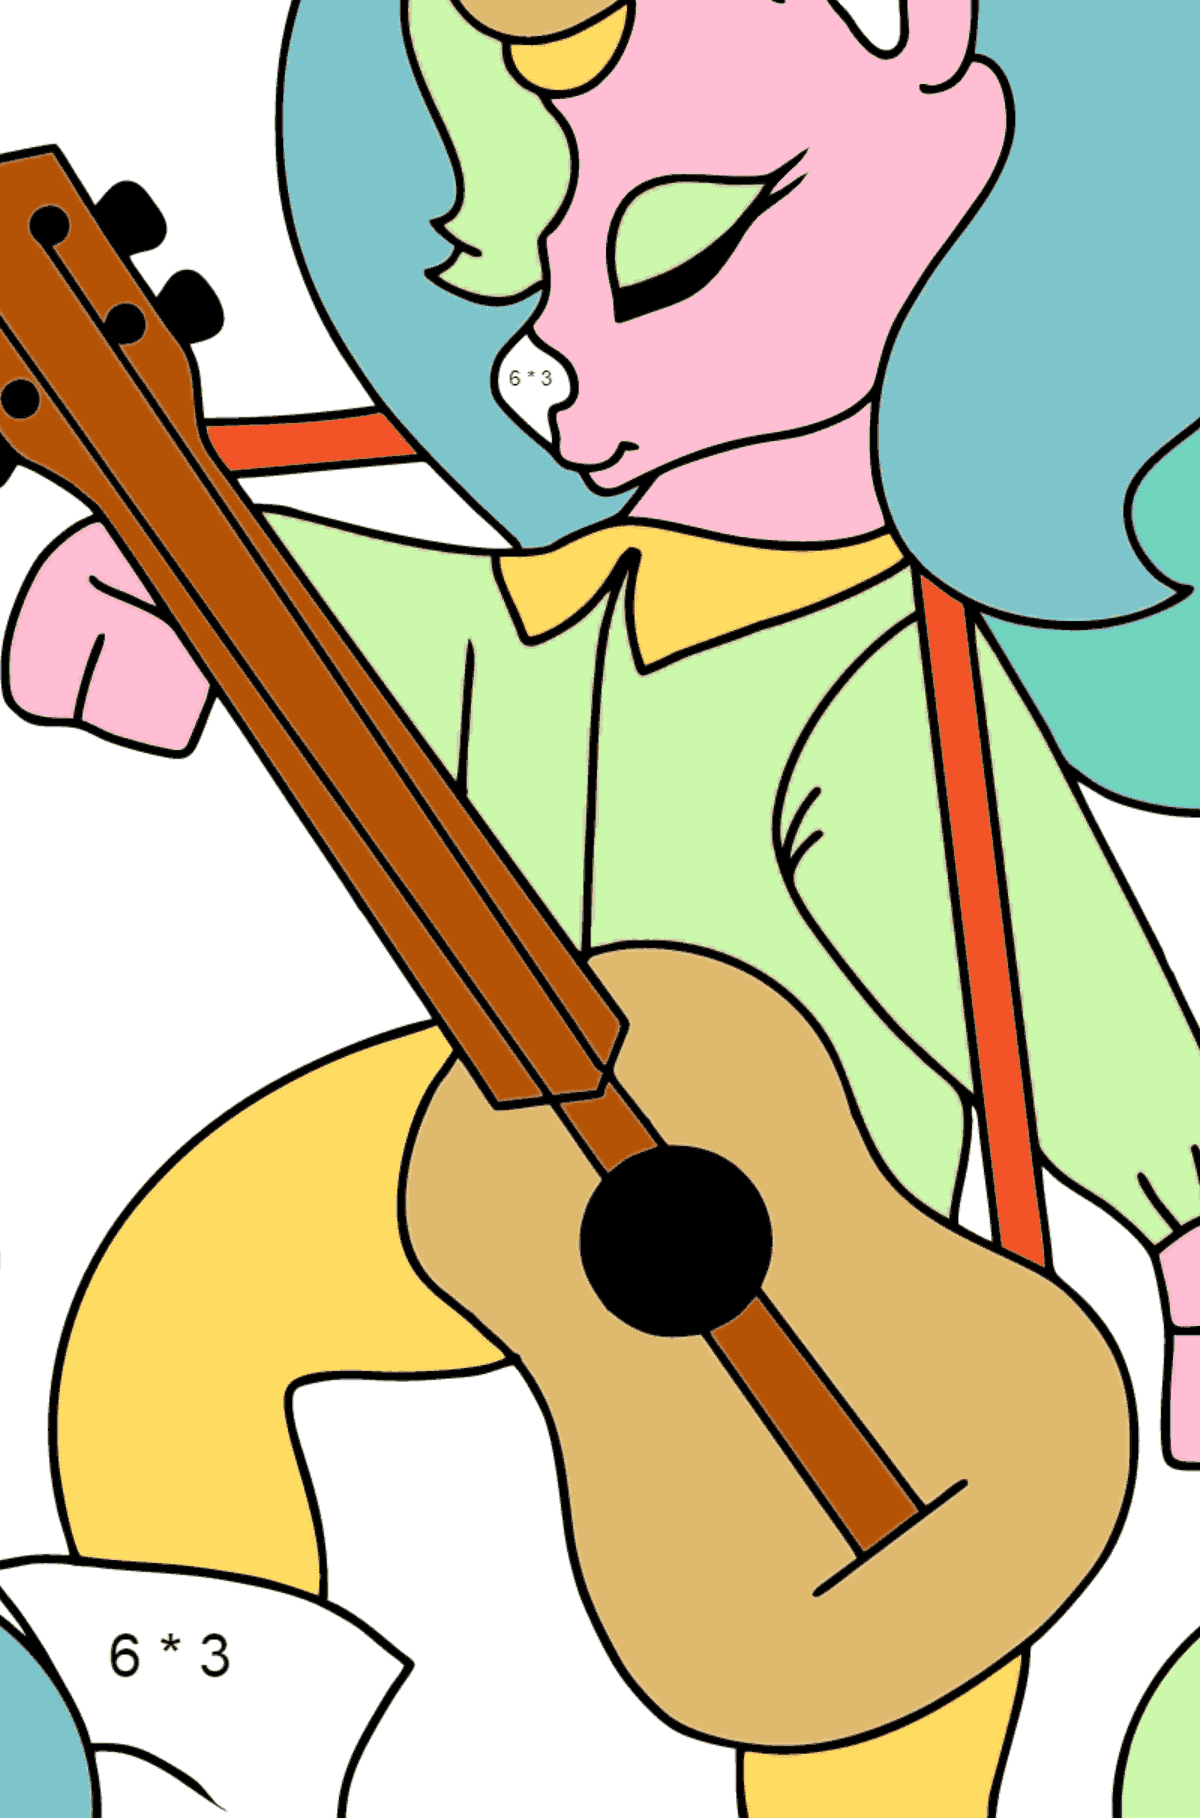 Coloring Page - A Unicorn with a Guitar - Math Coloring - Multiplication for Kids